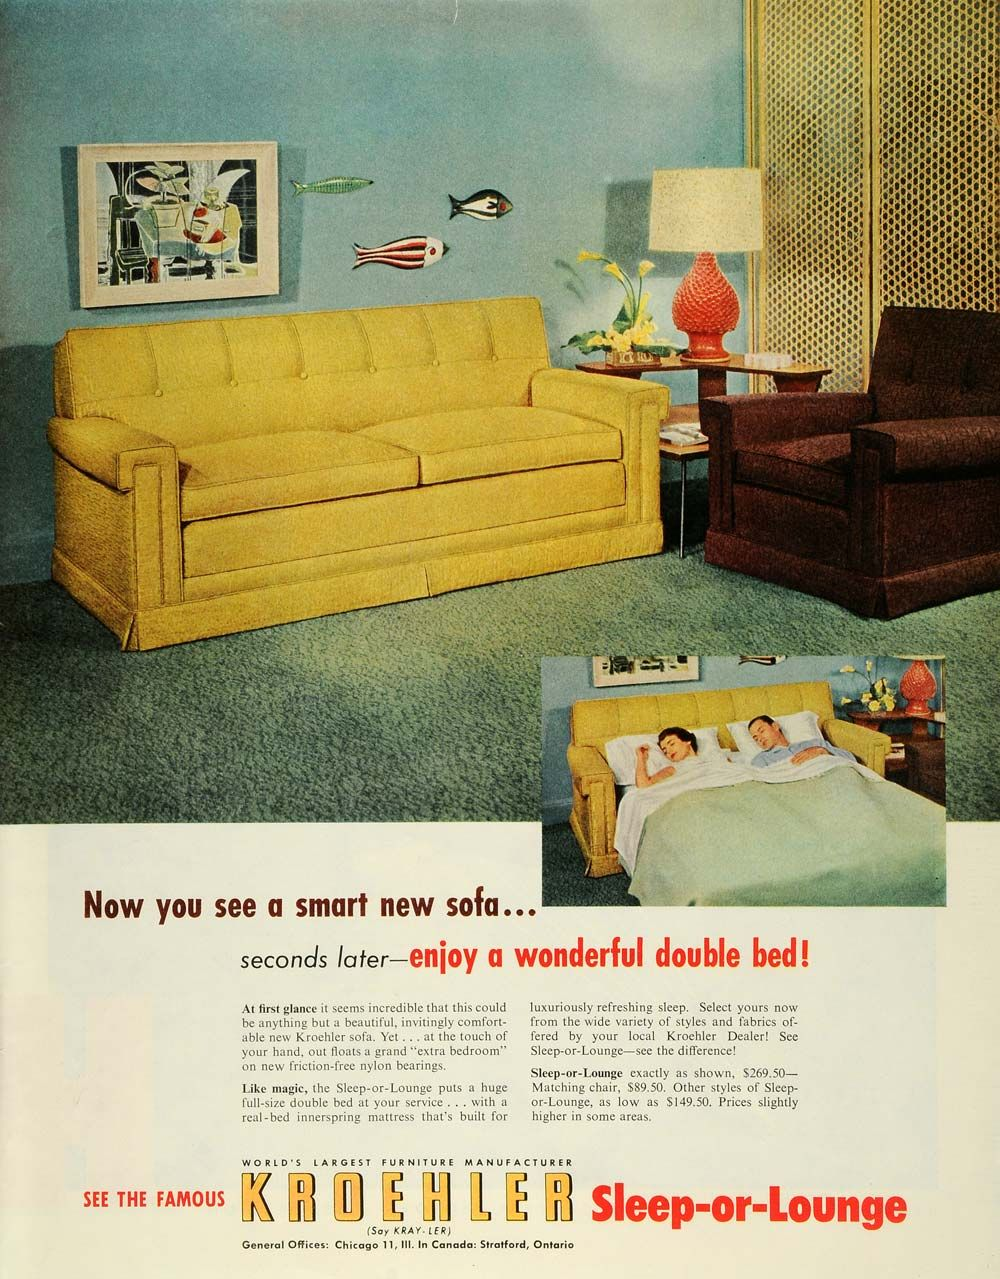 kroehler antique furniture | ... Ad Kroehler Chicago Sleep-or-Lounge  Sofa-Bed Futon Furniture Antique - 1953 Ad Kroehler Chicago Sleep-or-Lounge Sofa-Bed Futon Furniture